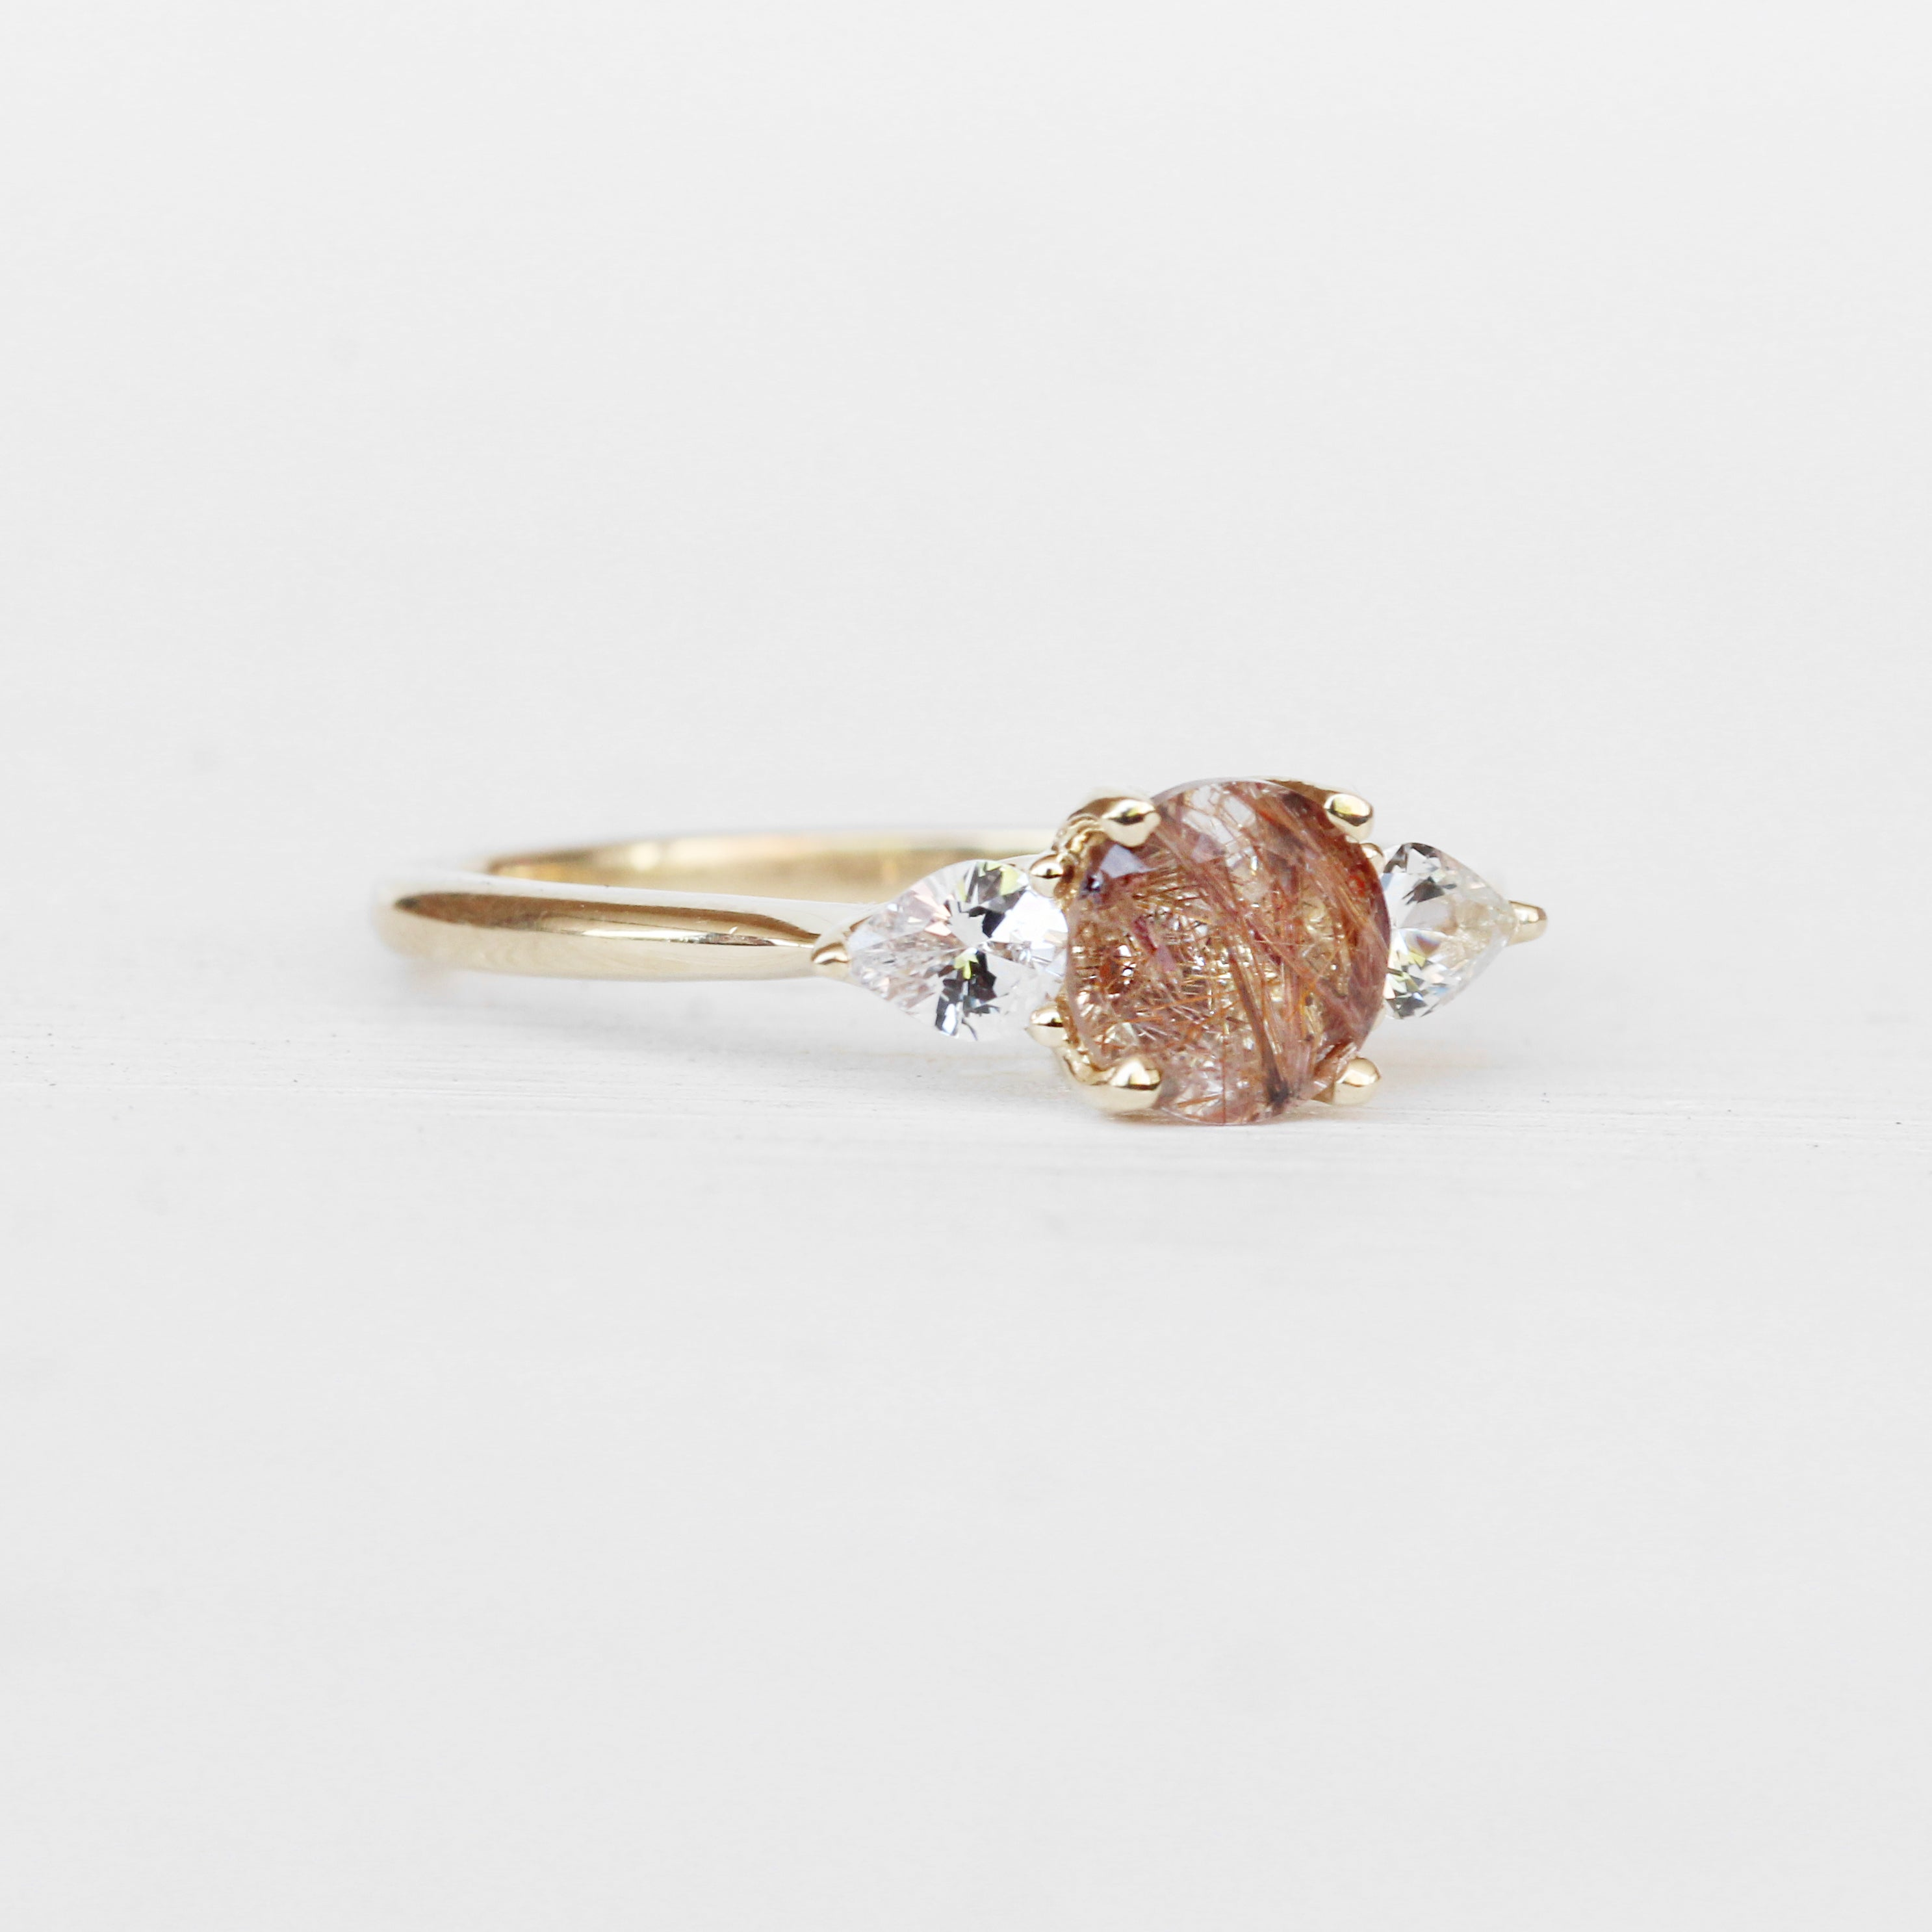 Oleander Ring with a Copper Rulitated Quartz and White Sapphires in 14k Yellow Gold - Ready to Size and Ship